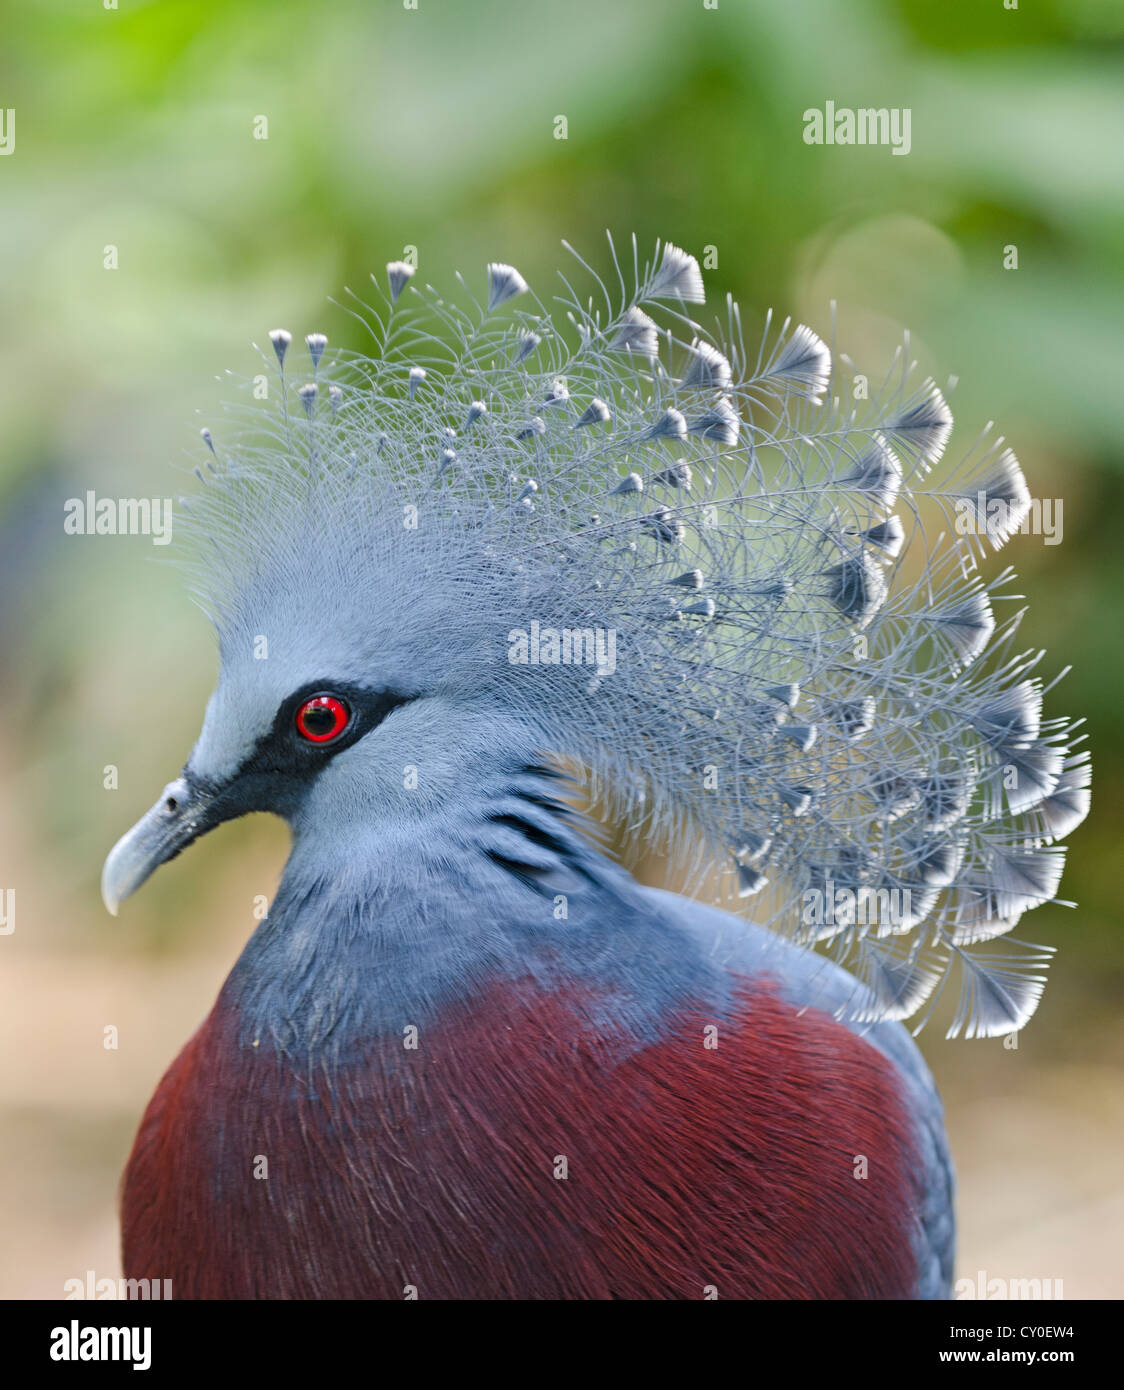 Victoria Crowned Pigeon, Goura victoria New Guinea - Stock Image